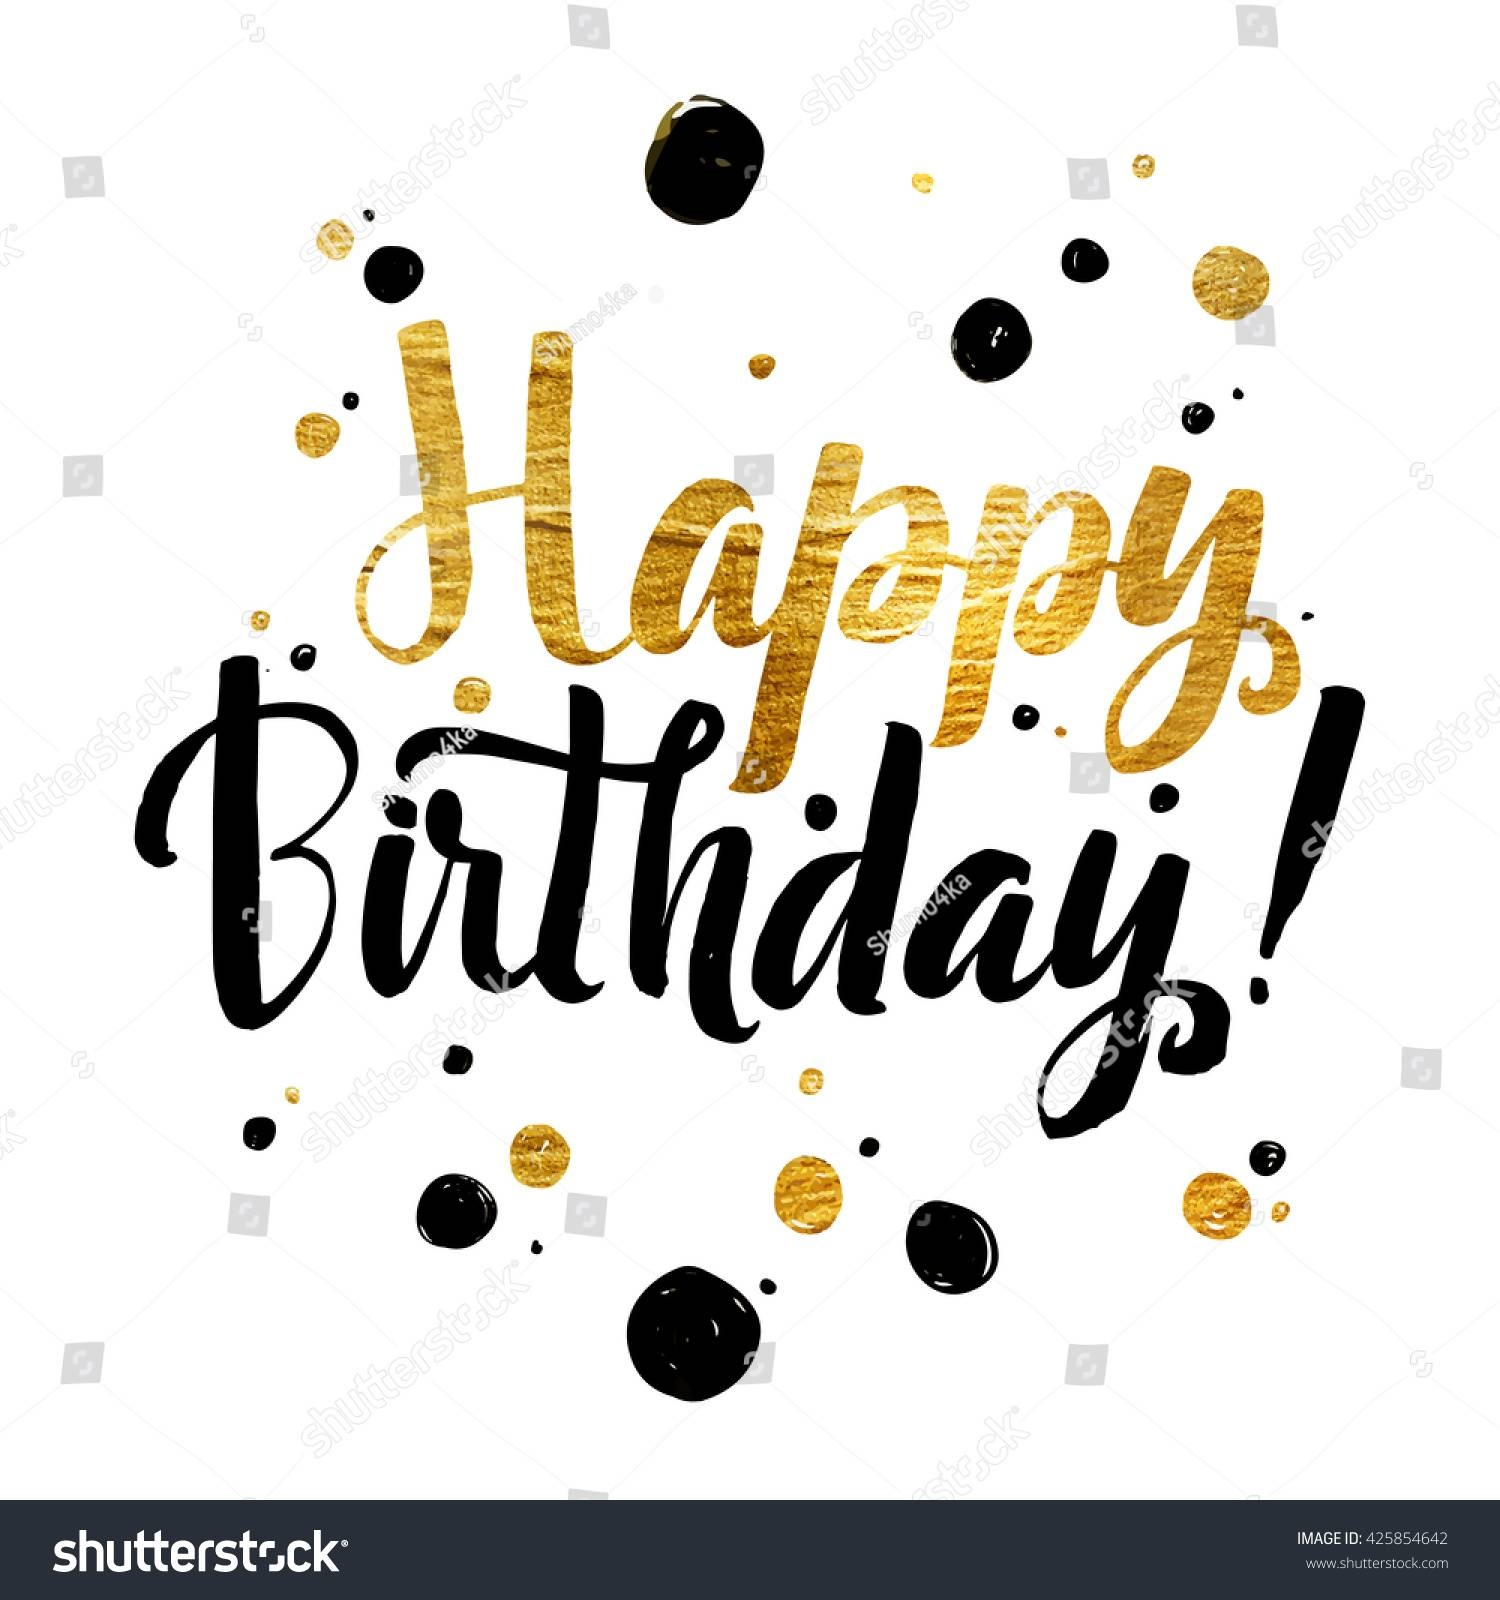 Happy Birthday Gold Foil Calligraphic Message Stock Vector With Regard To Most Recently Released Happy Birthday Wall Art (View 12 of 20)